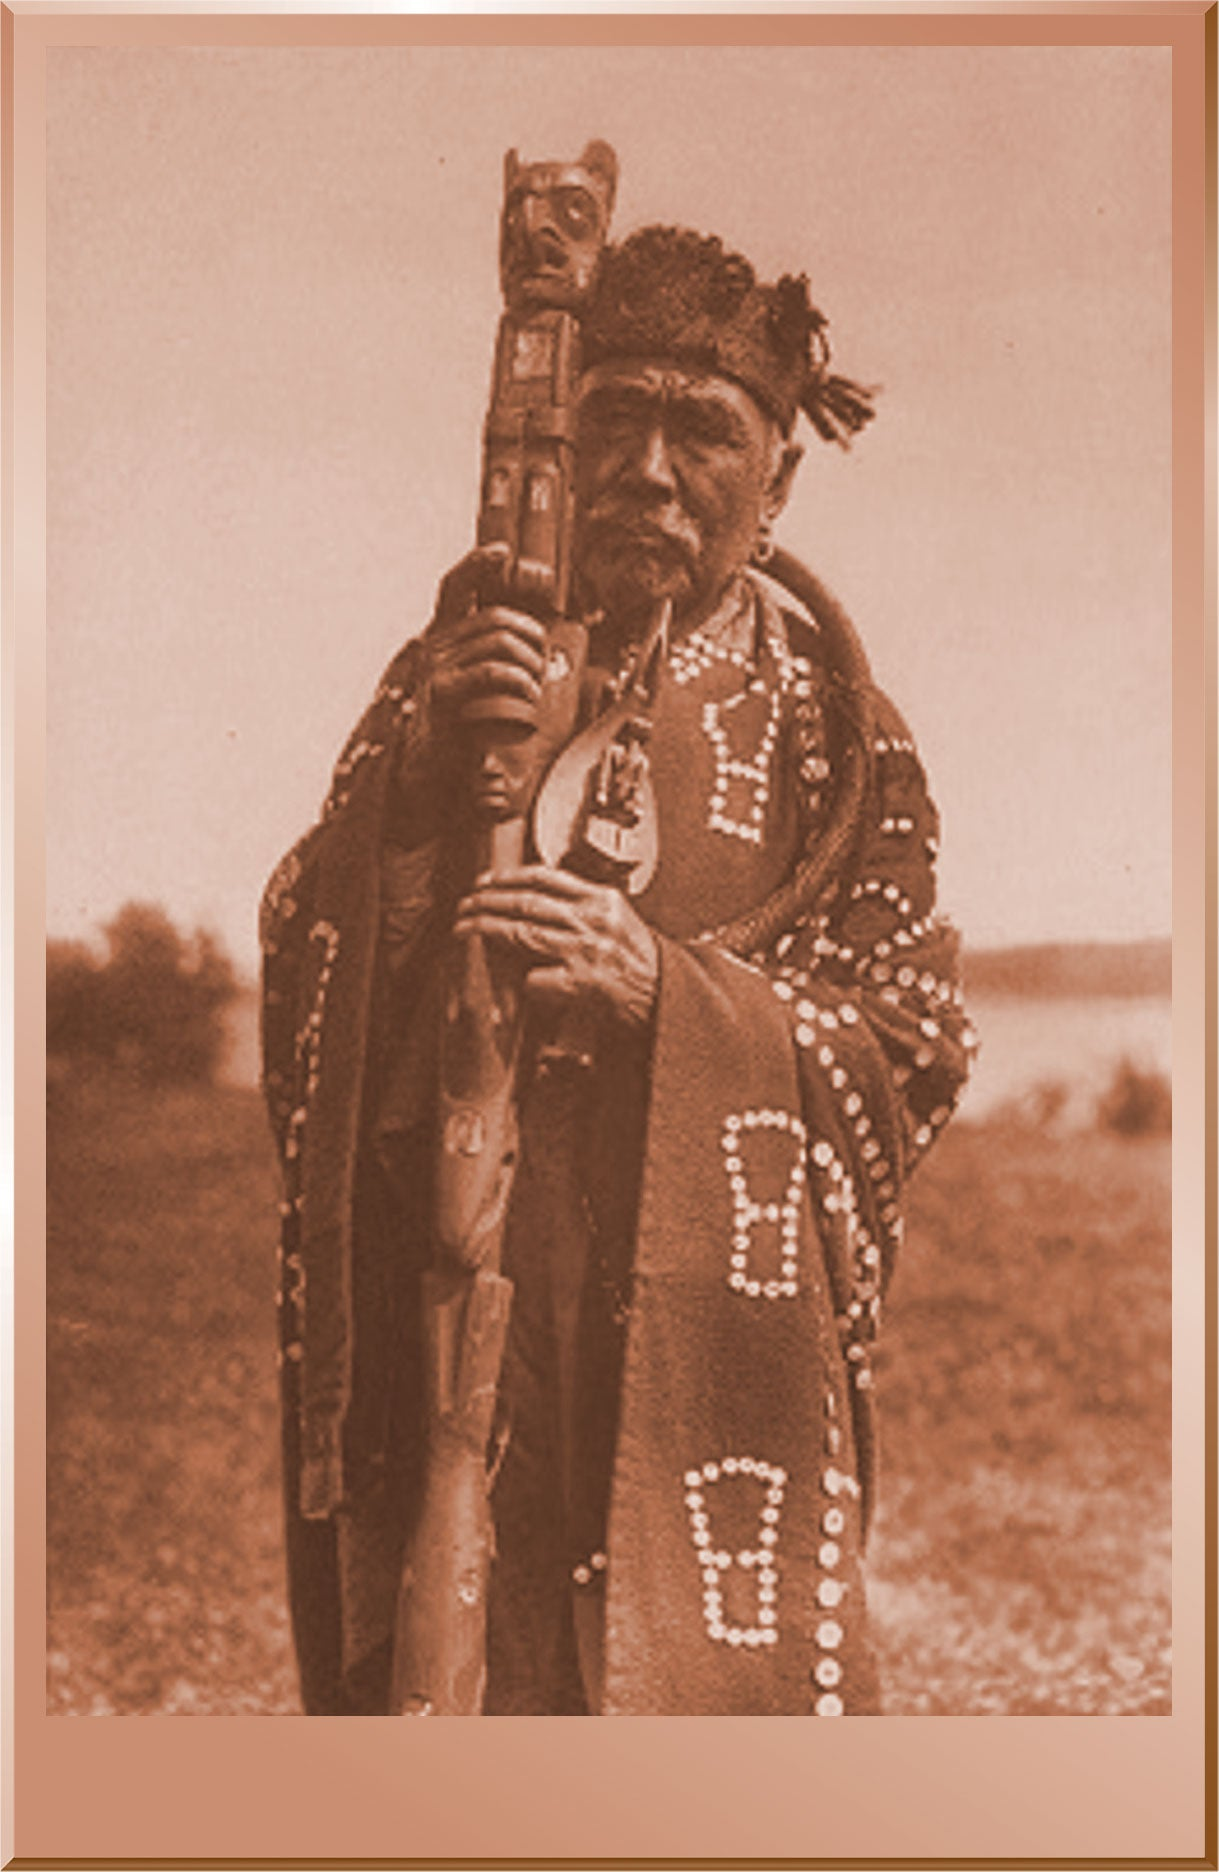 Hamasaka in Tluwulahu Costume with Speaker's Staff - Qagyuhl